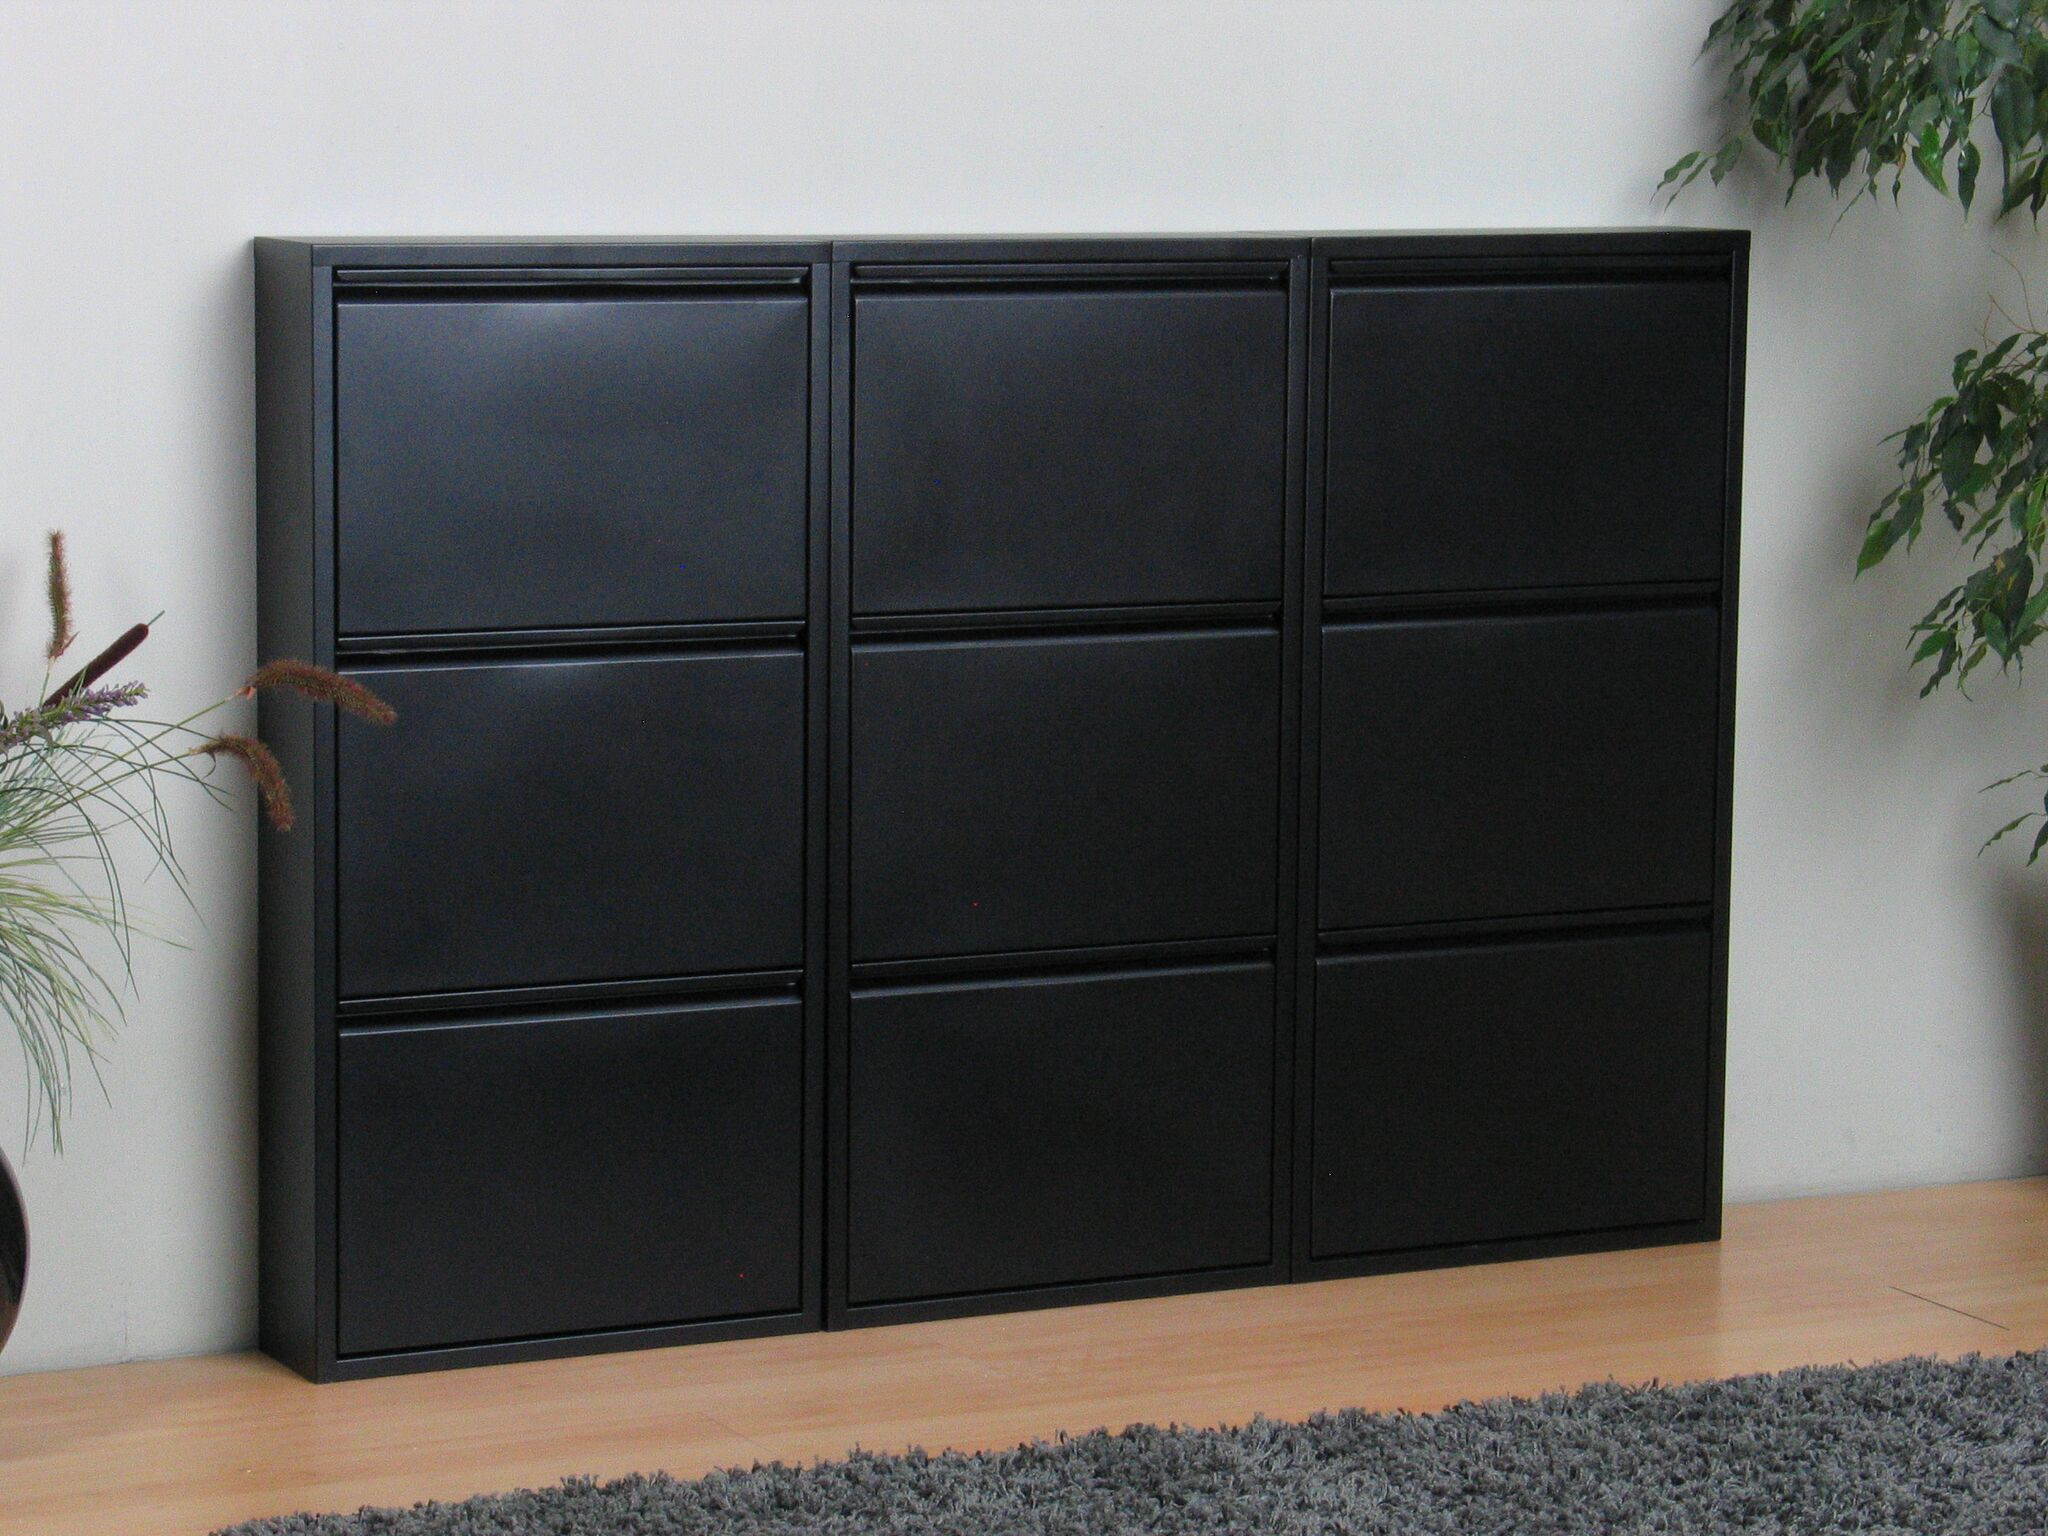 xxl schuhschrank pisa 9 klappen metall schuhkipper schuhregal schuhablage ebay. Black Bedroom Furniture Sets. Home Design Ideas